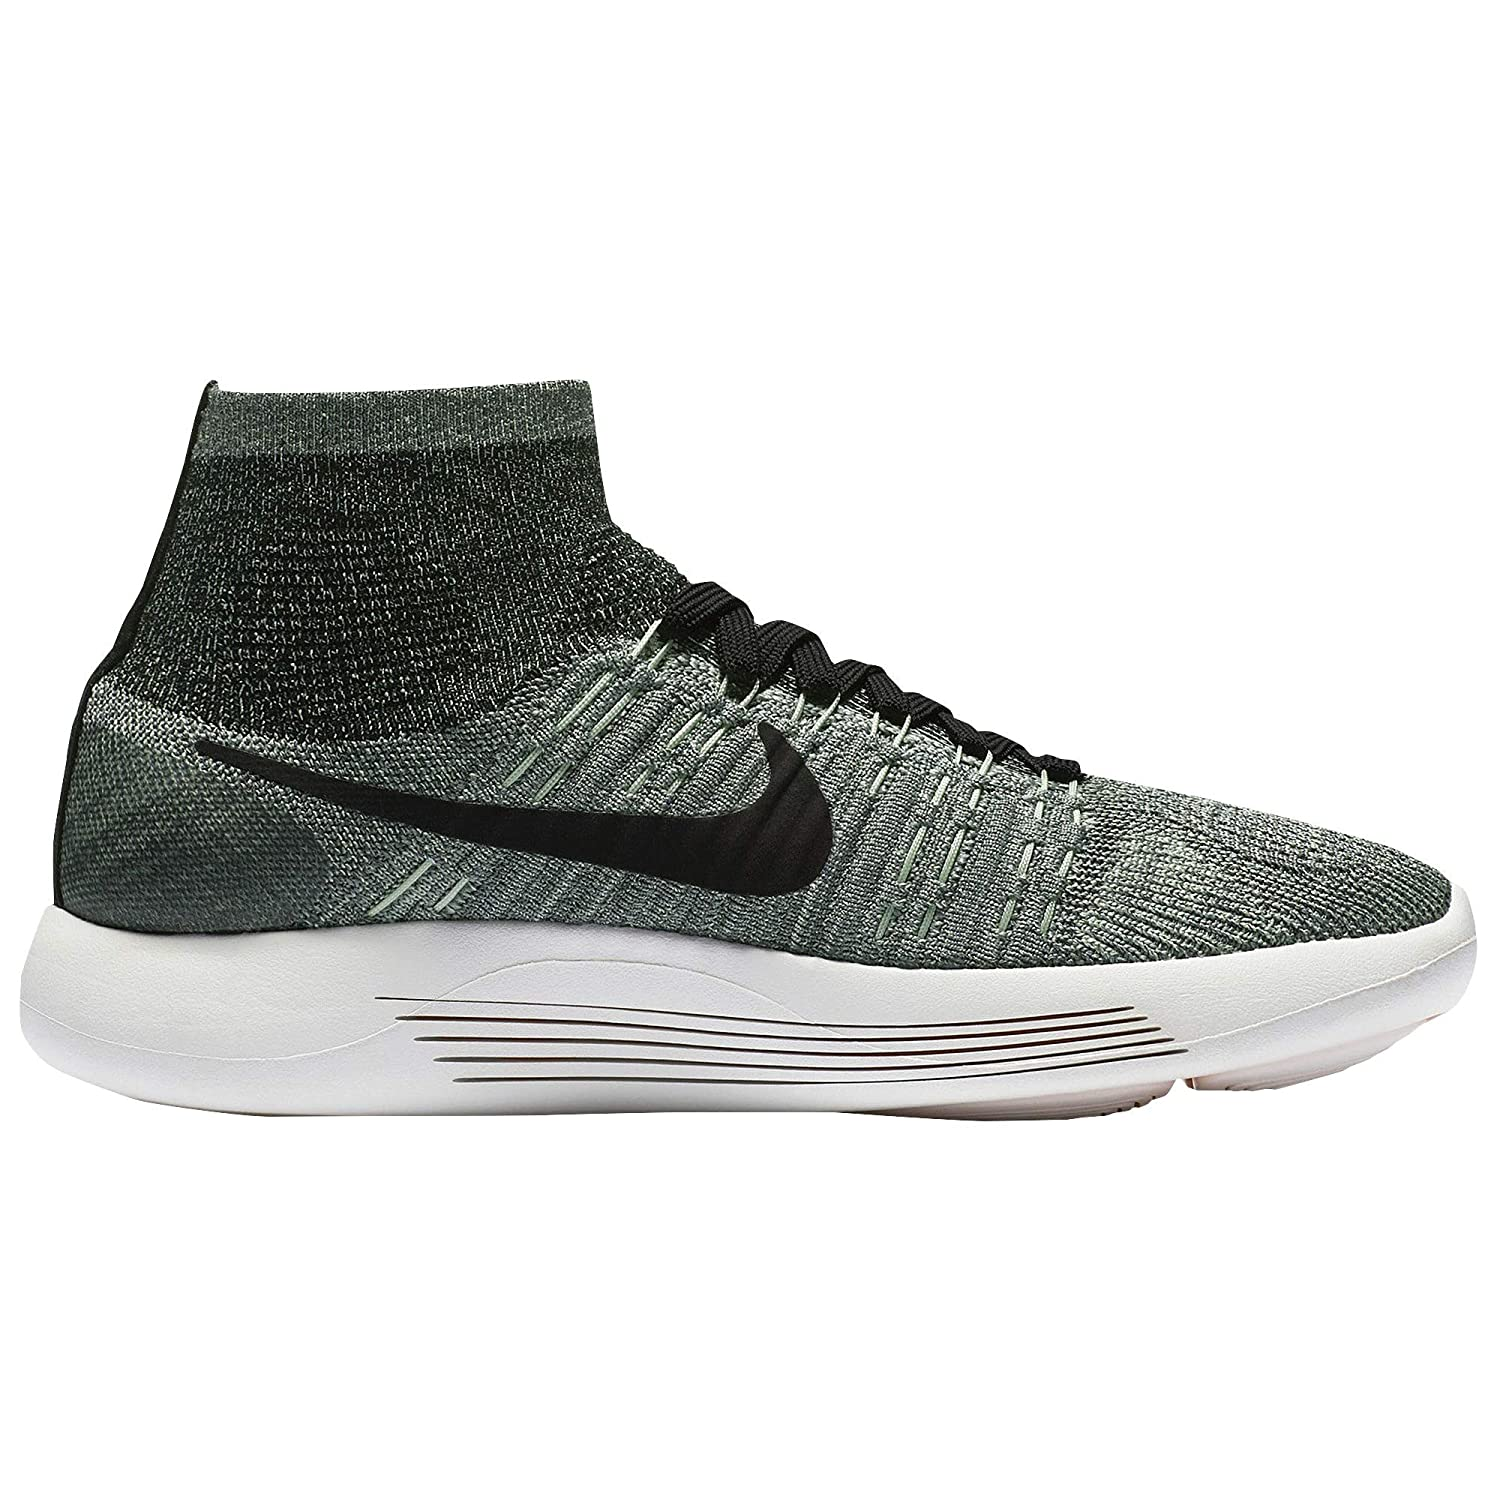 big sale c139d 26cef Amazon.com   Nike Lunarepic Flyknit Running Women s Shoes   Road Running